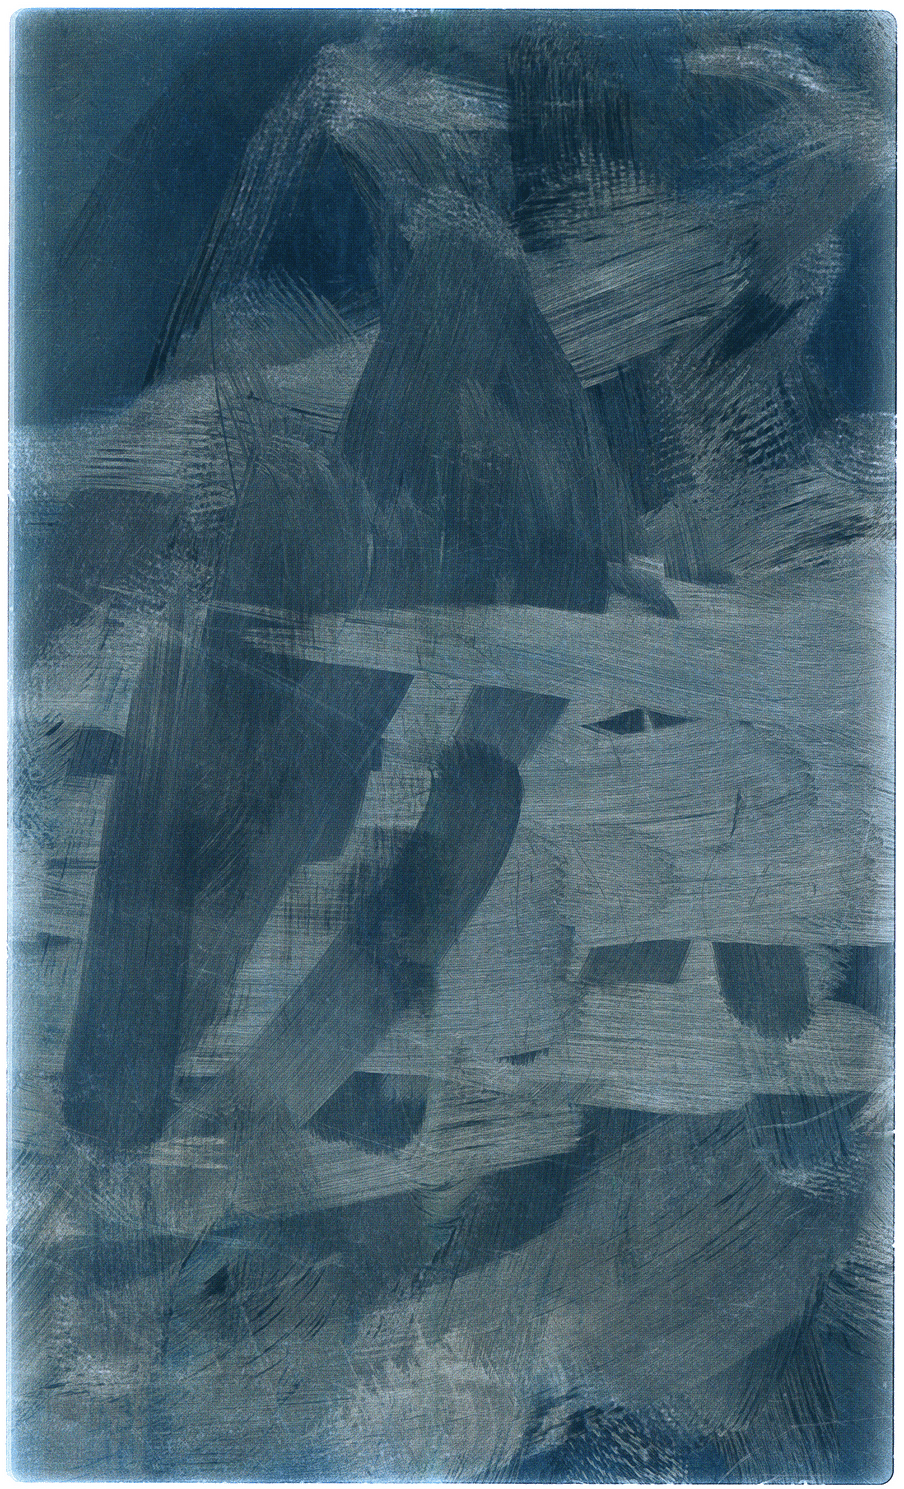 Shades of white and different blues on a shiny surface of fingerprints and swipes going in every direction; the surface of a phone looks here like an abstract painting